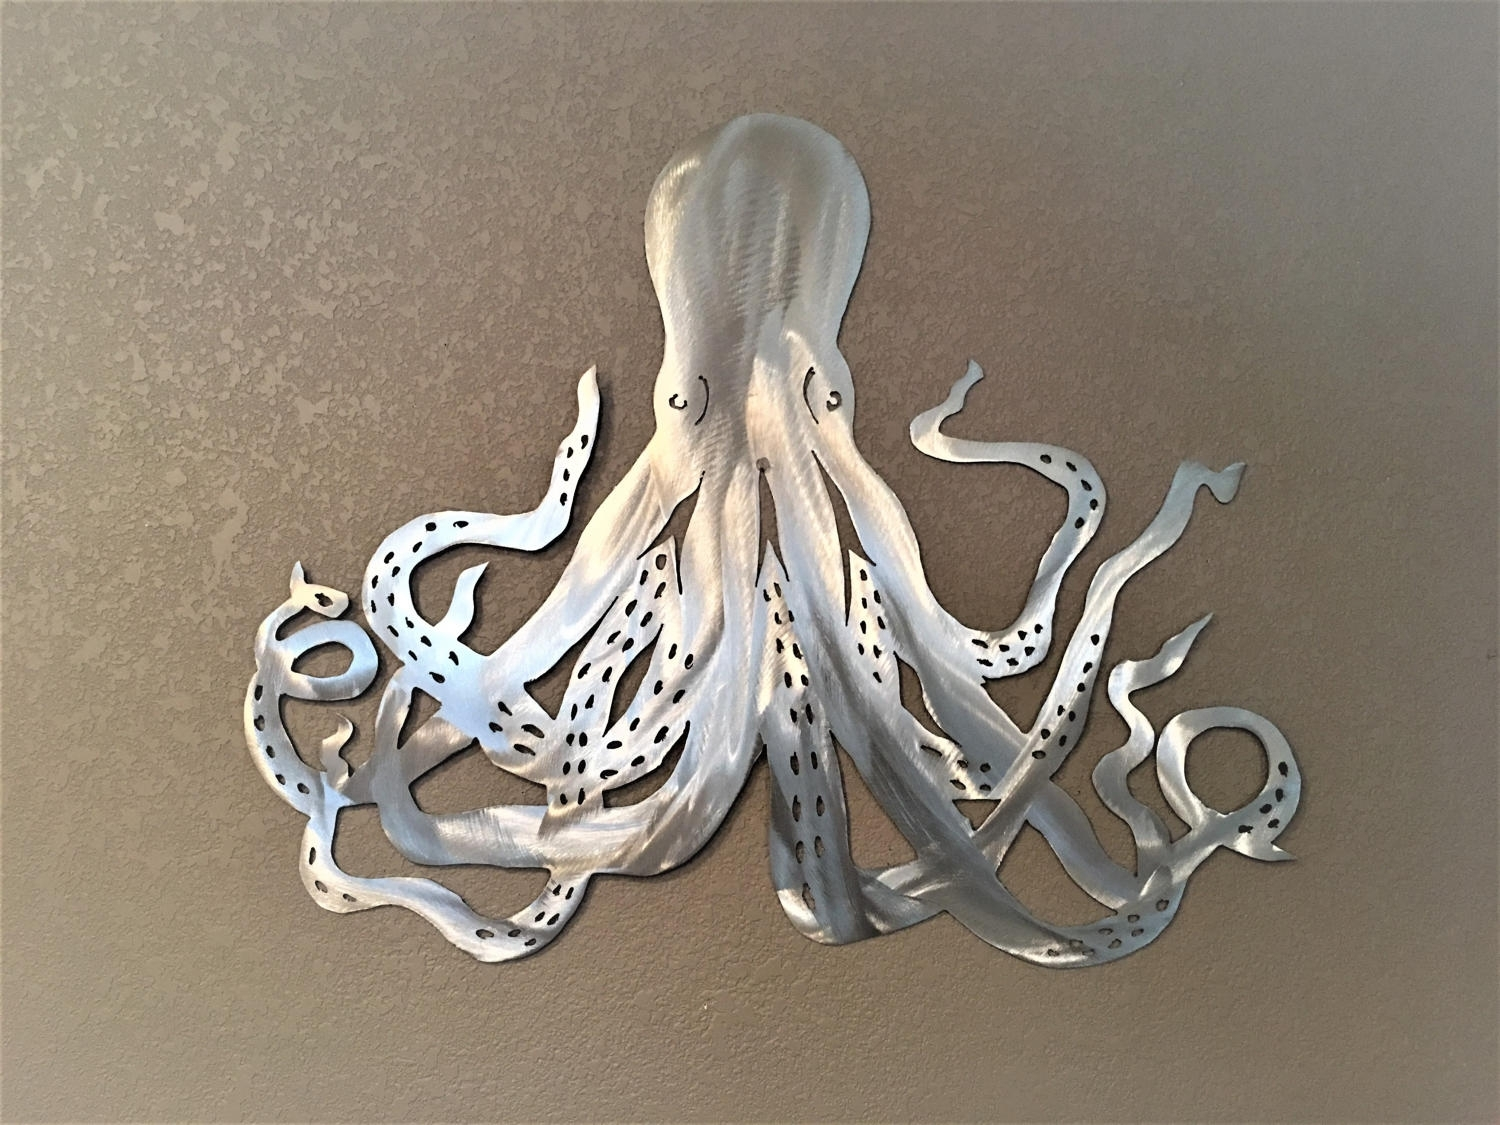 Octopus Metal Wall Art. Ocean Life, Saltwater Series (View 13 of 20)